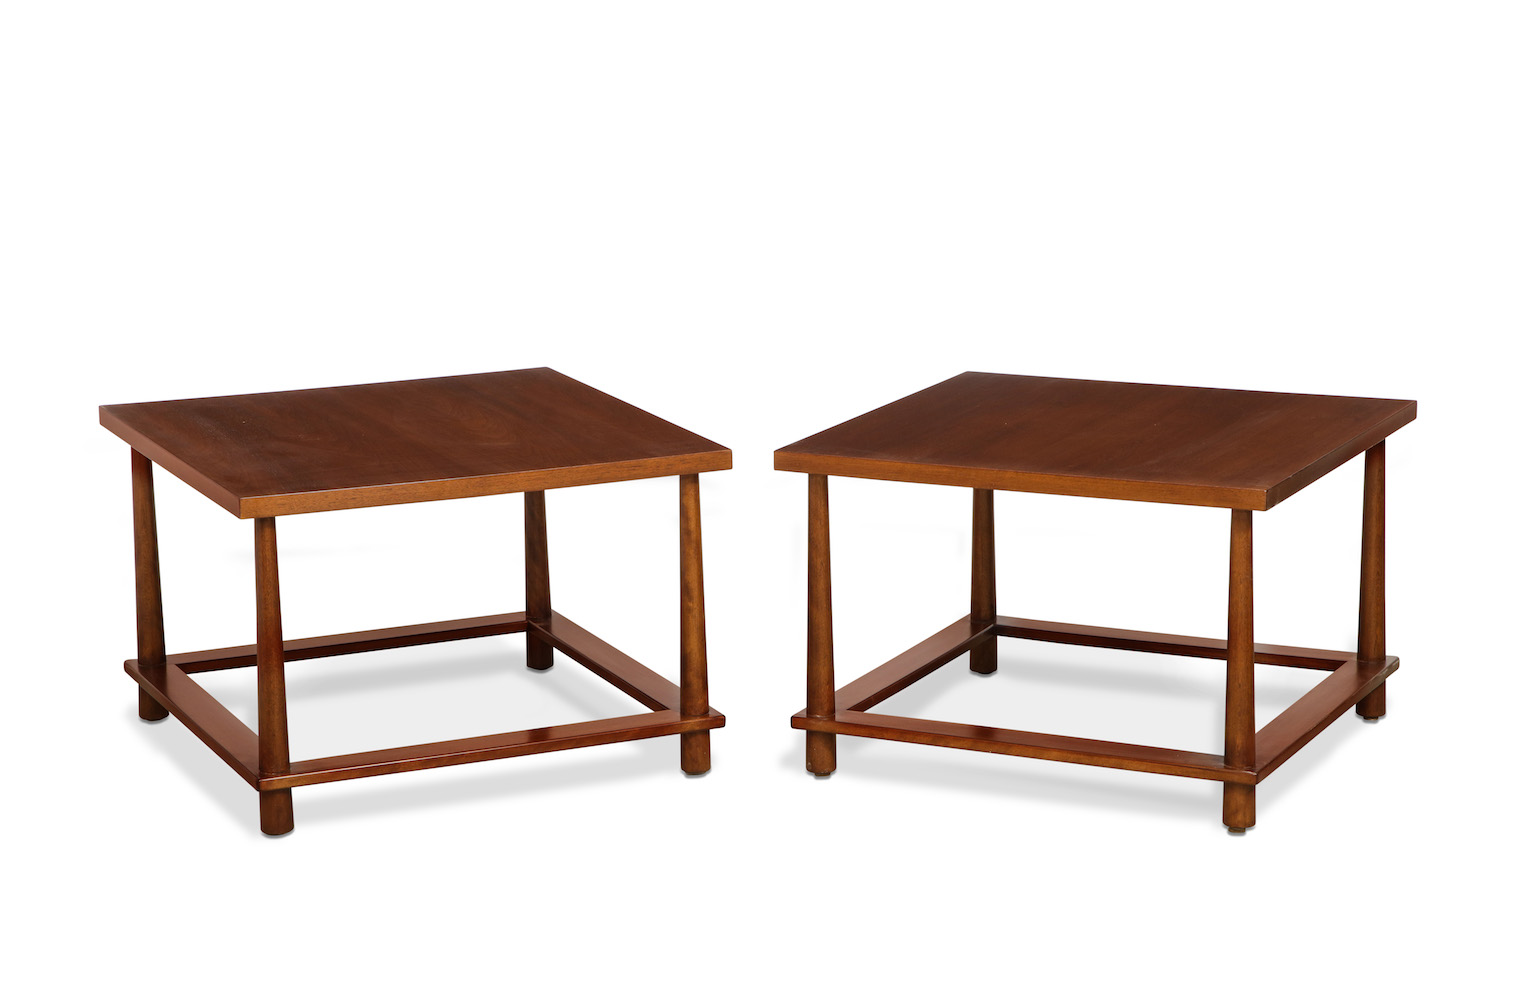 Gibbings big square tables 1.jpg